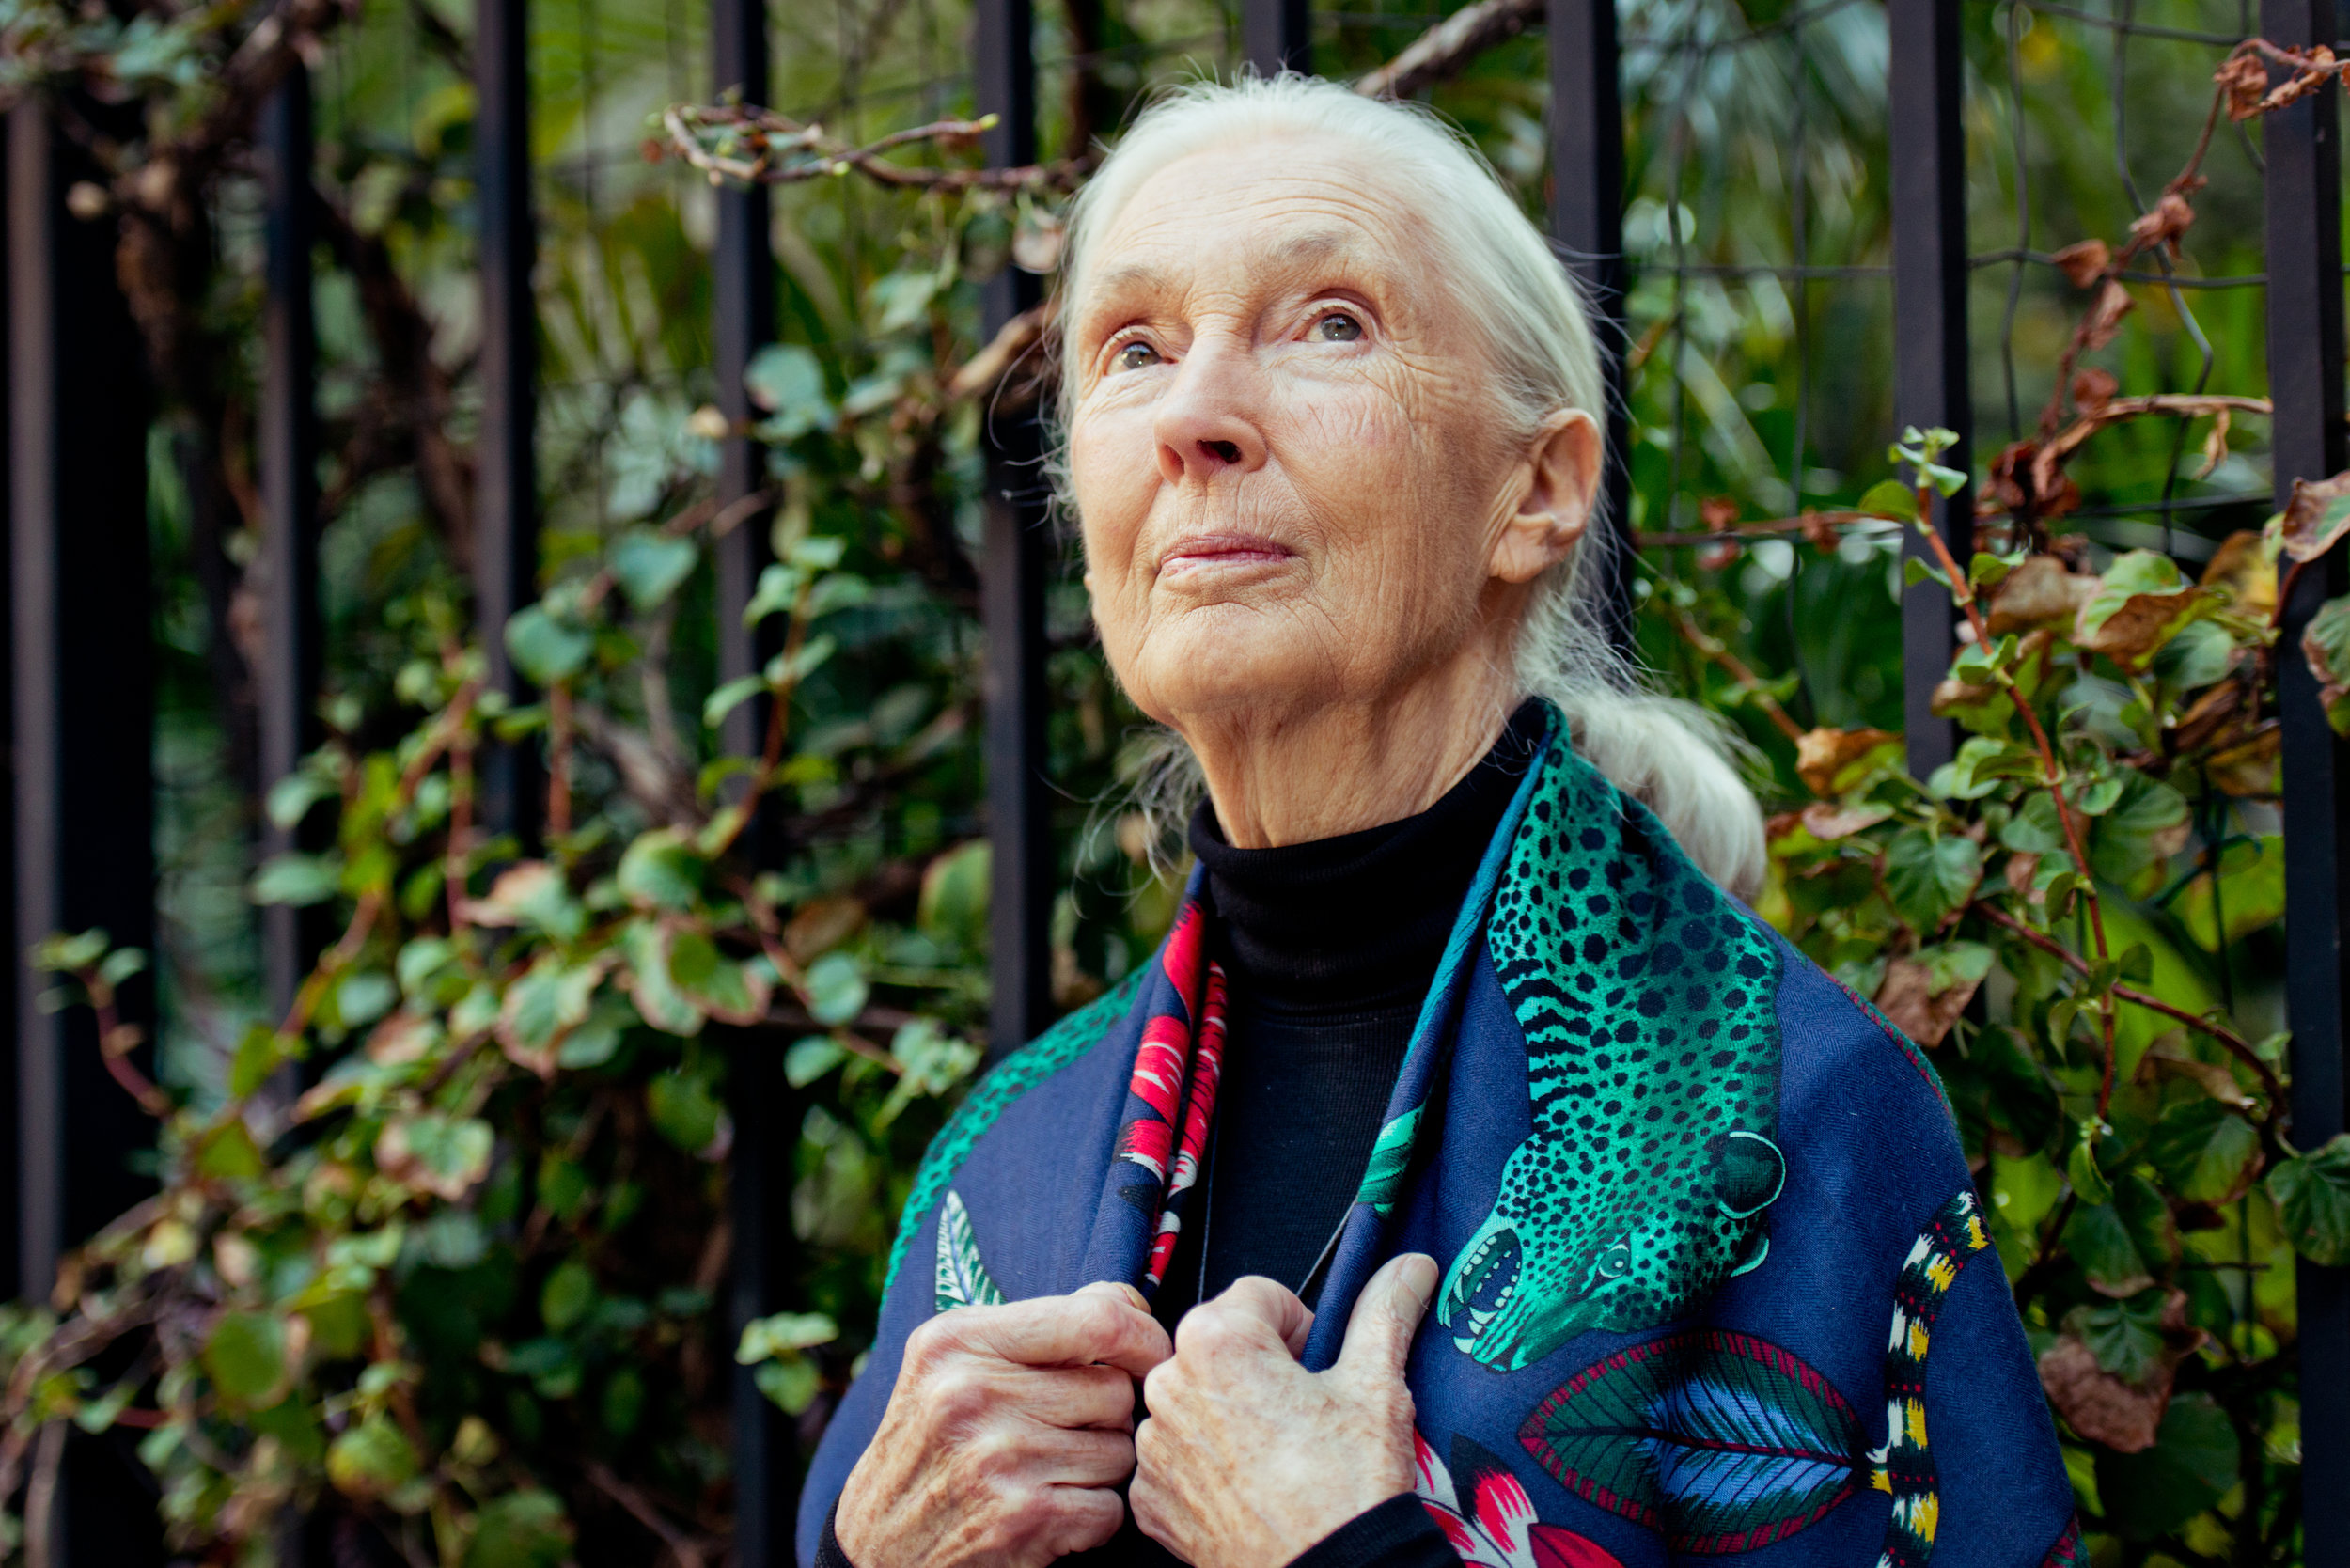 Jane Goodall in Soho, NYC